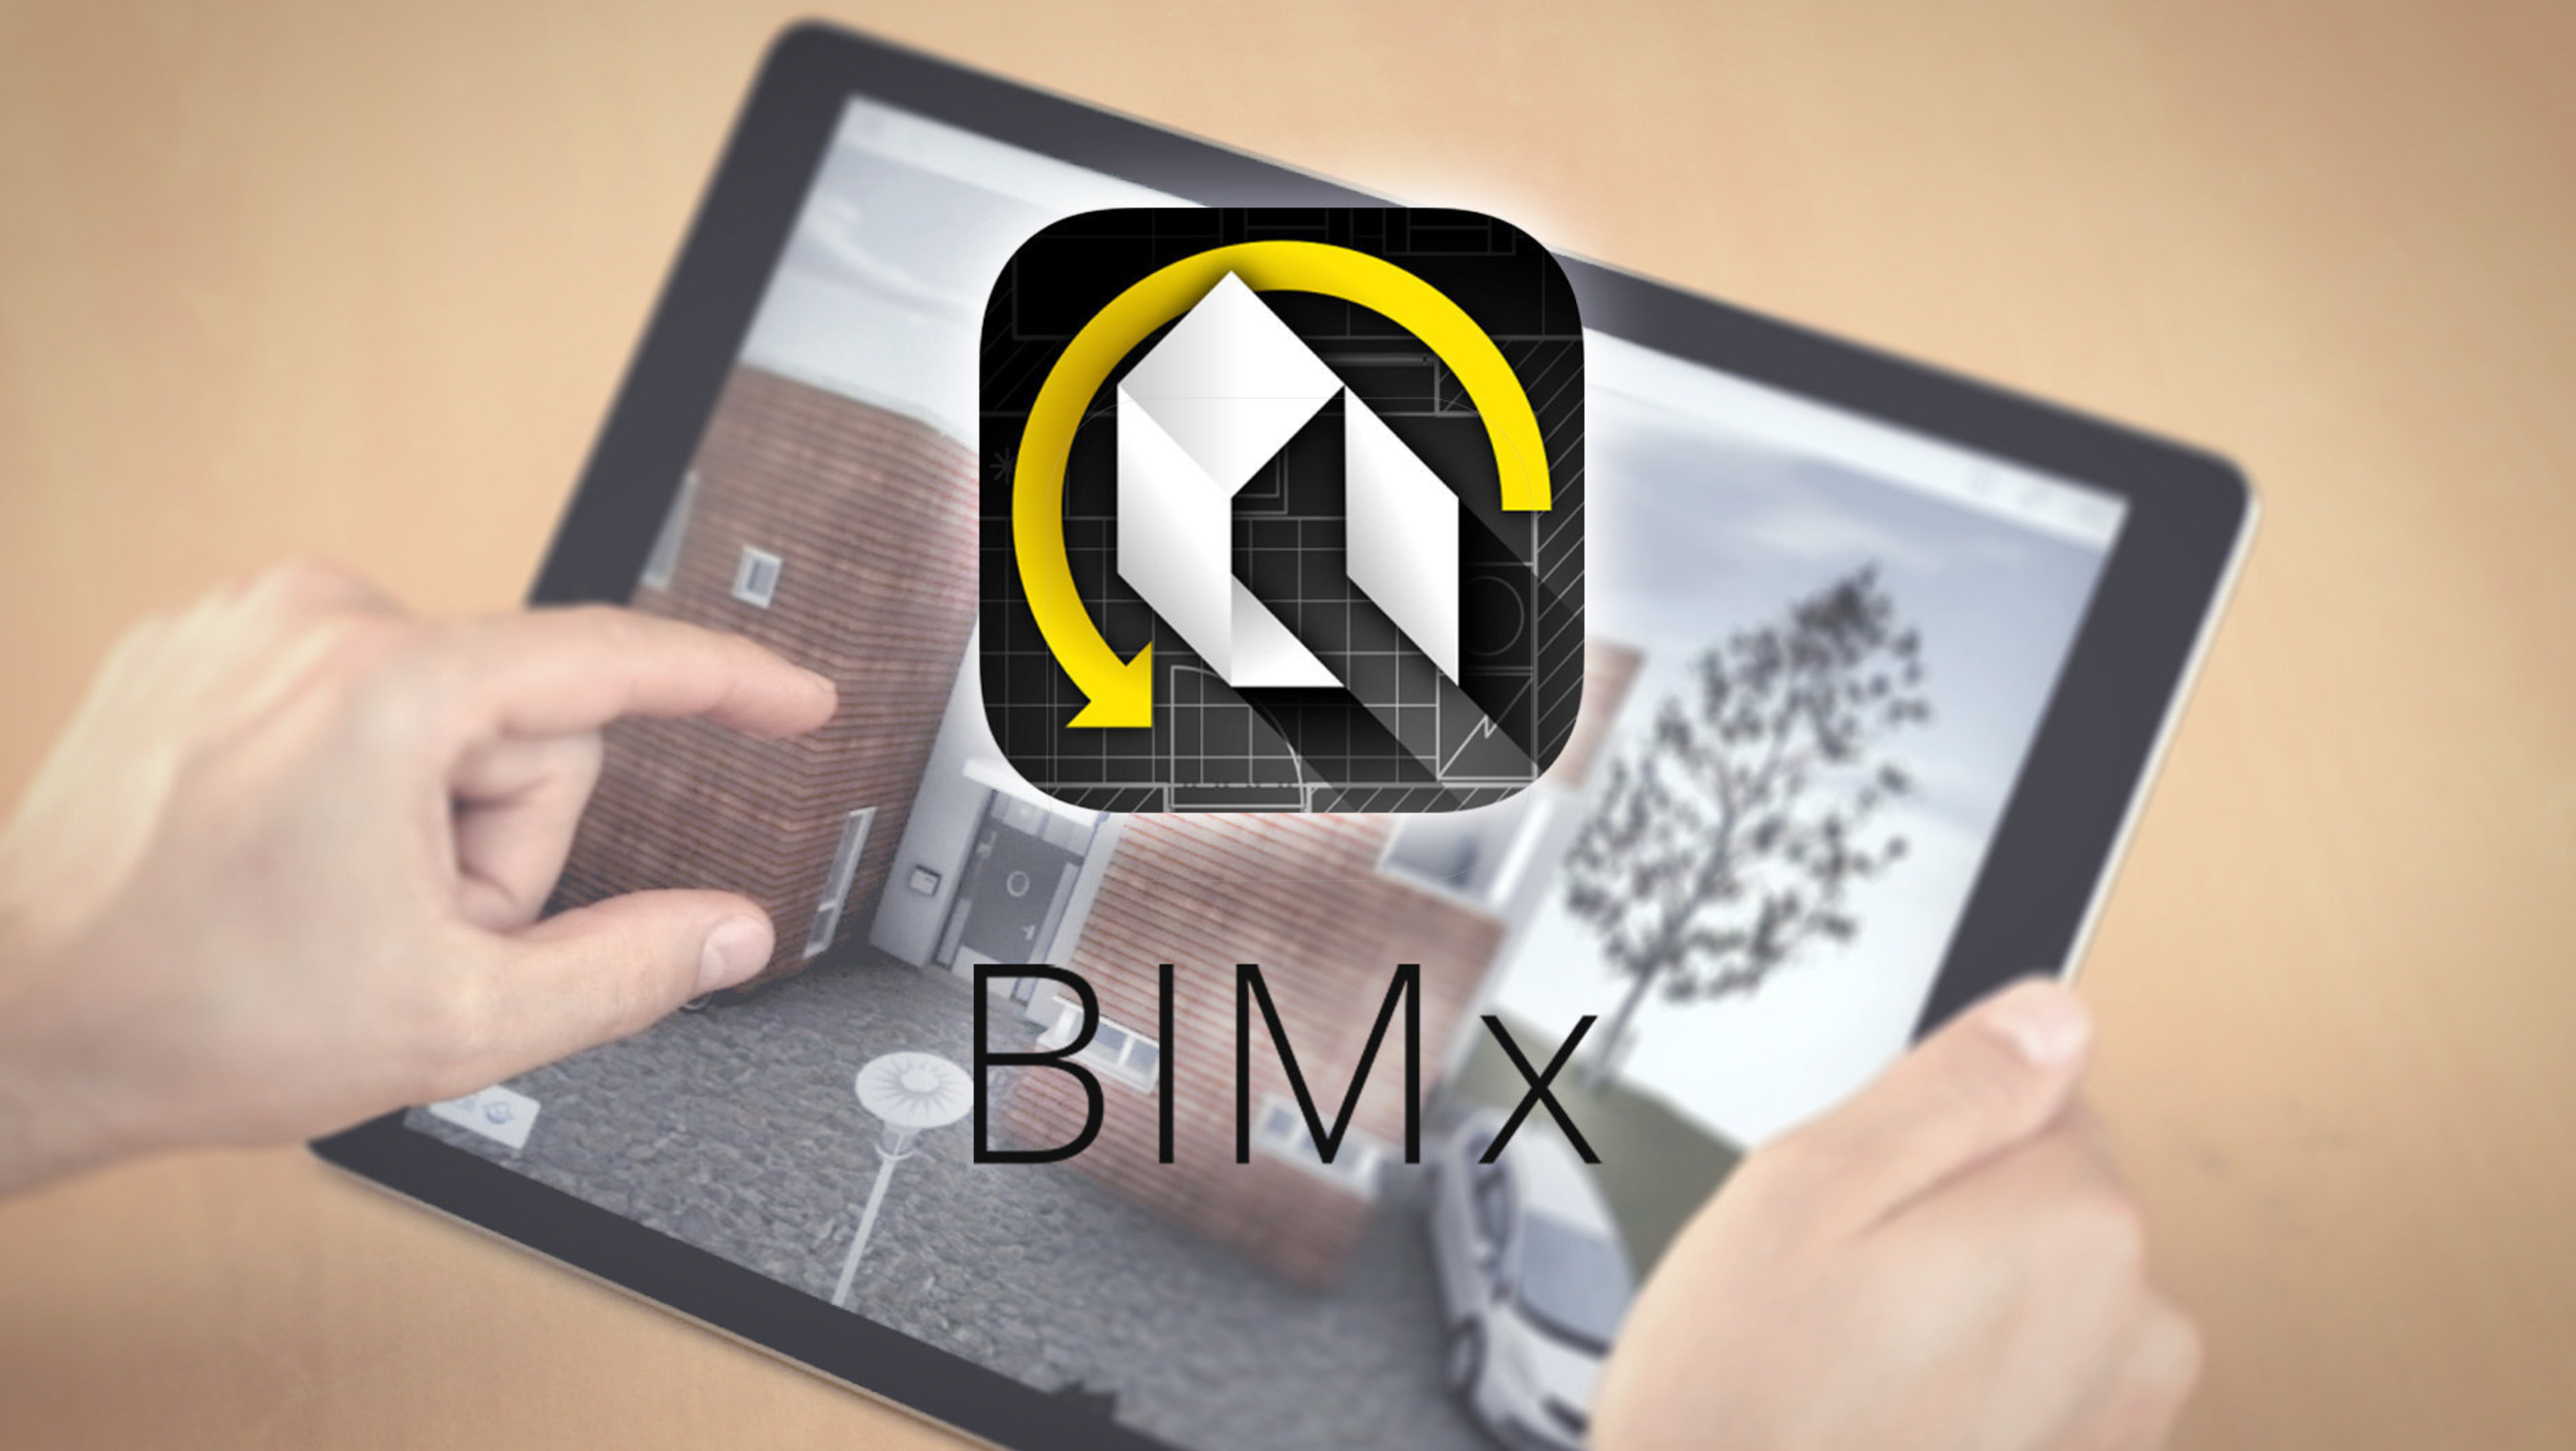 BIMx (free) now provides free access to the full set of project information including 2D documents 3D models and any non-geometric data incorporated into BIM